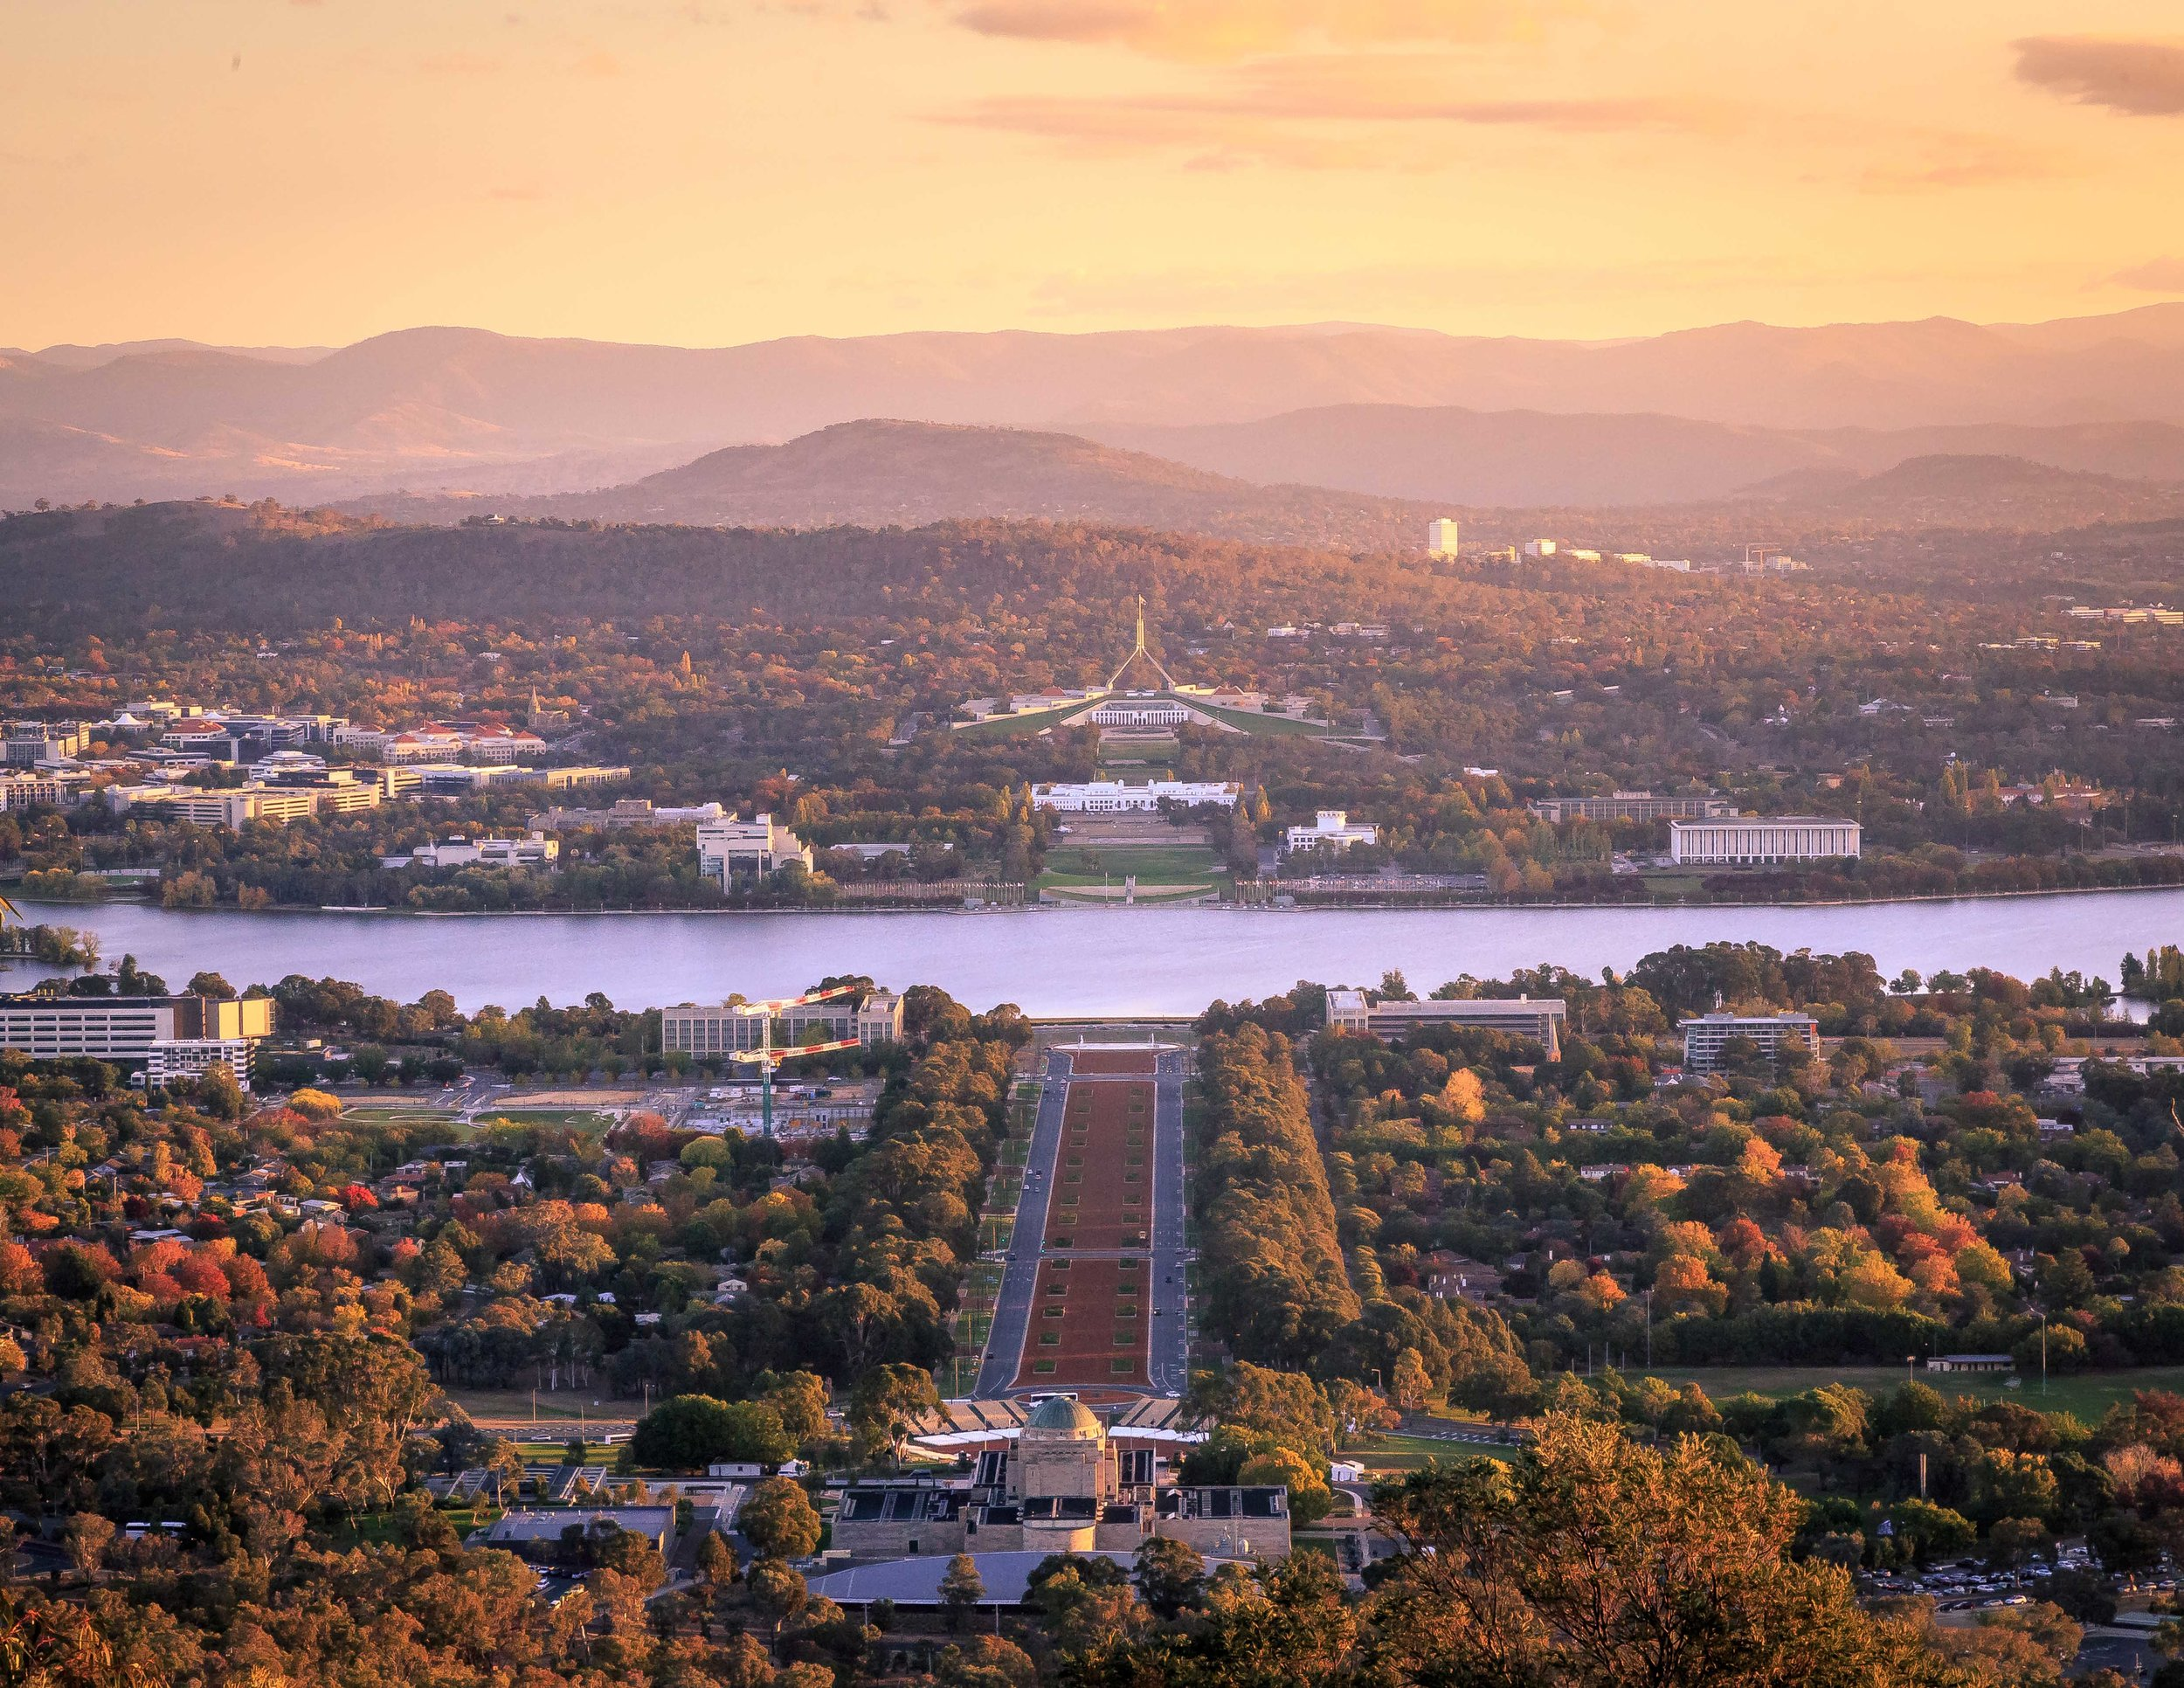 Must-see places in Australia: Mount Ainslie, Canberra